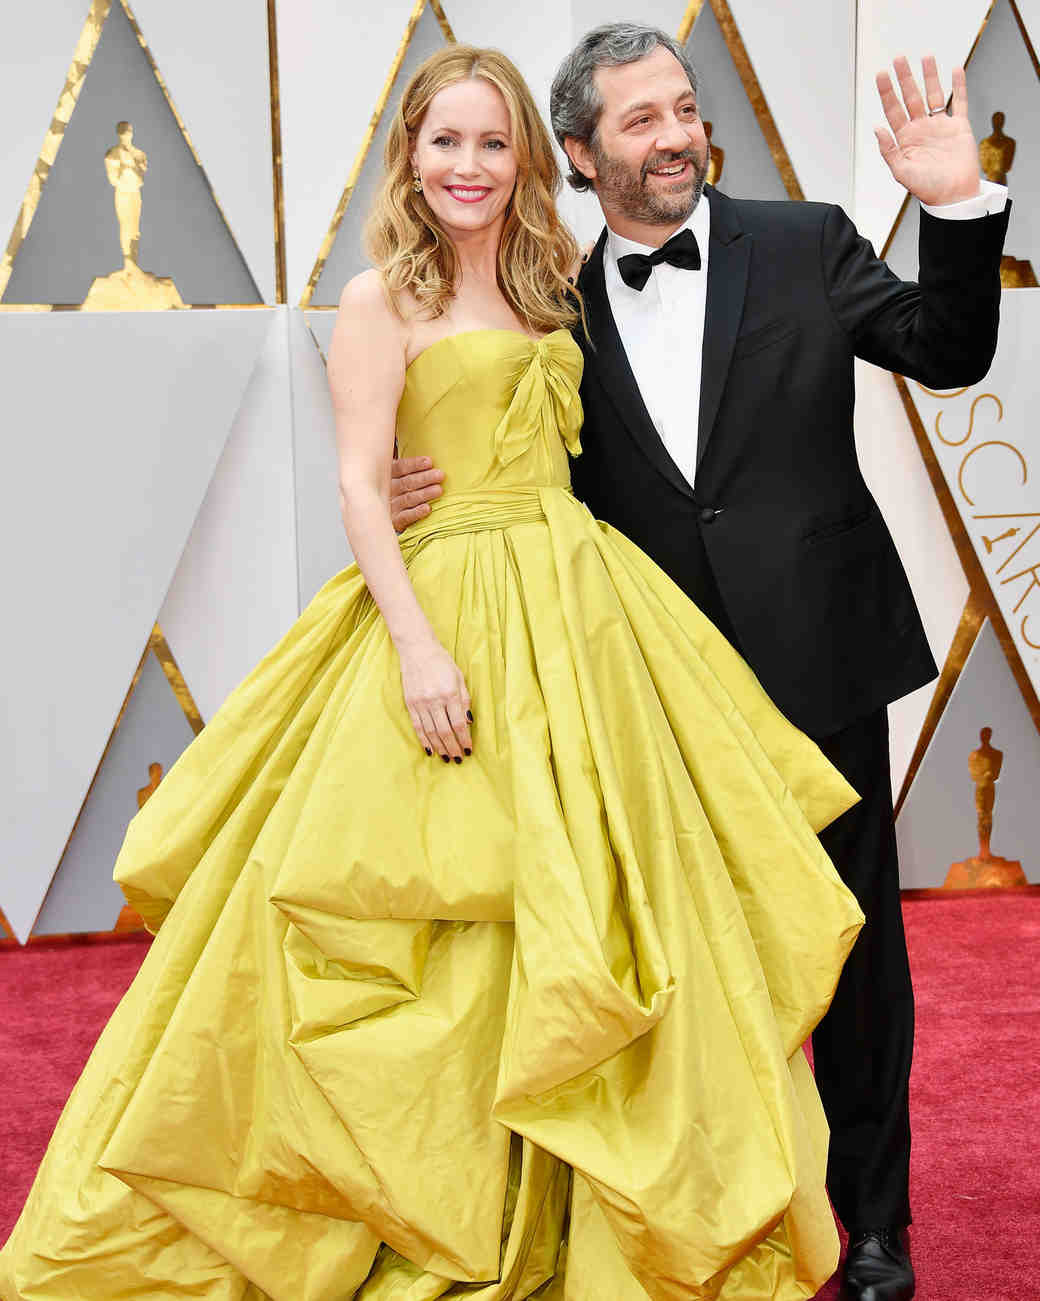 Leslie Mann and Judd Apatow at 2017 Academy Awards